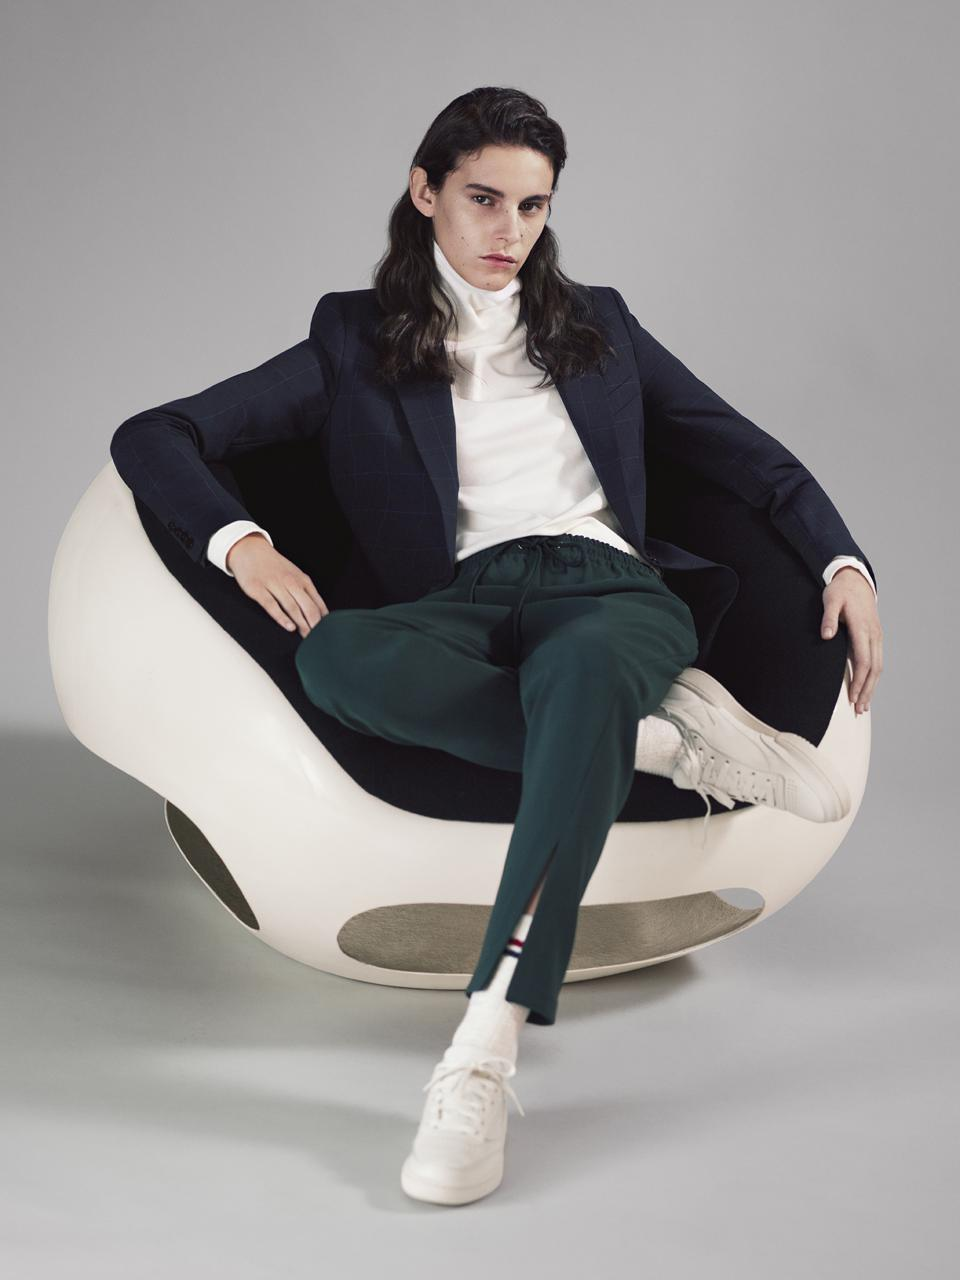 Model sitting a chair in navy blue blazer, turtleneck and green pants.